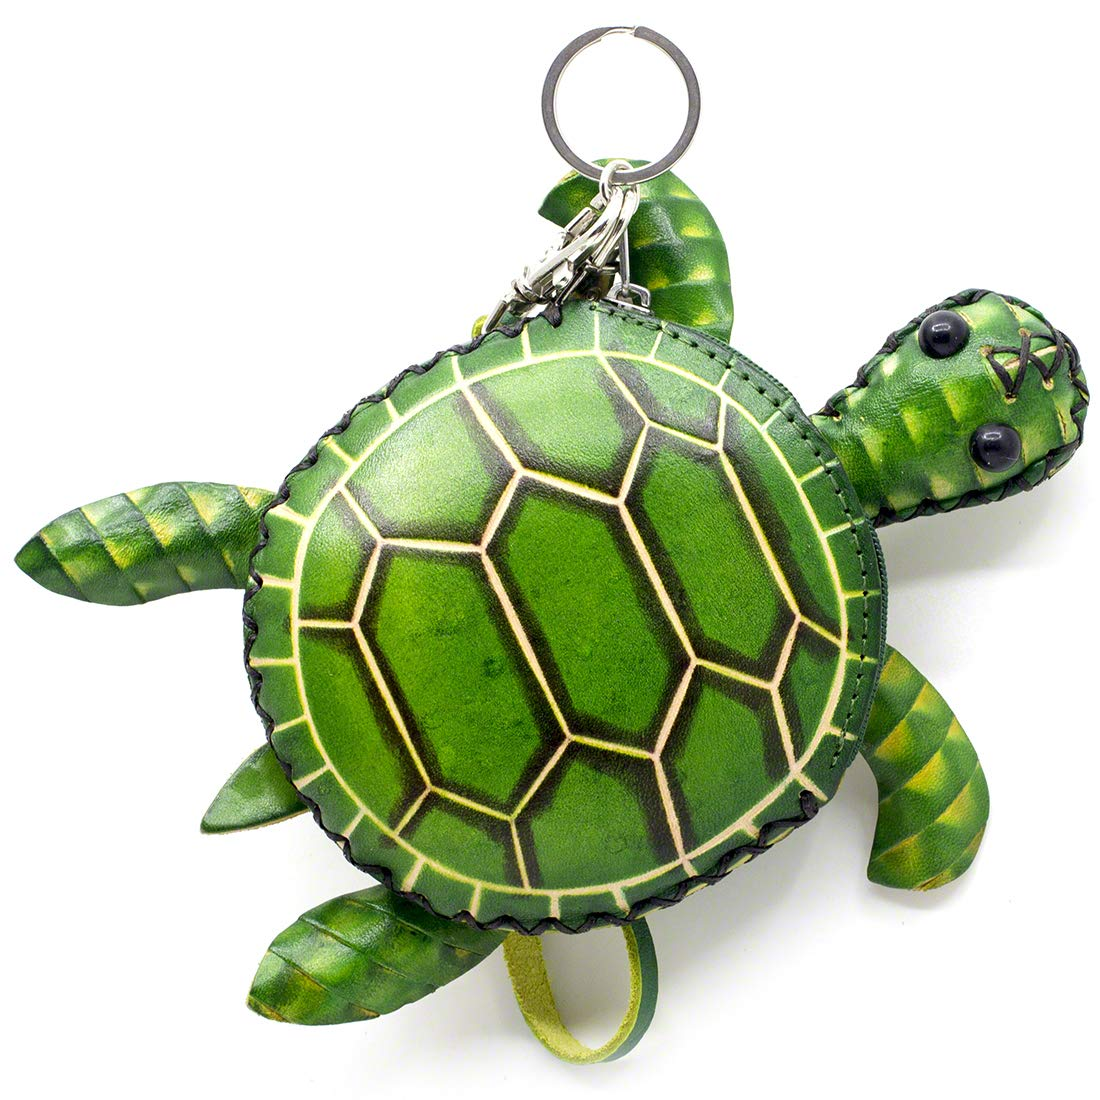 Turtle Design Genuine Handcrafted Wristlets Cash Coin Purses with Key Ring for Womens Green